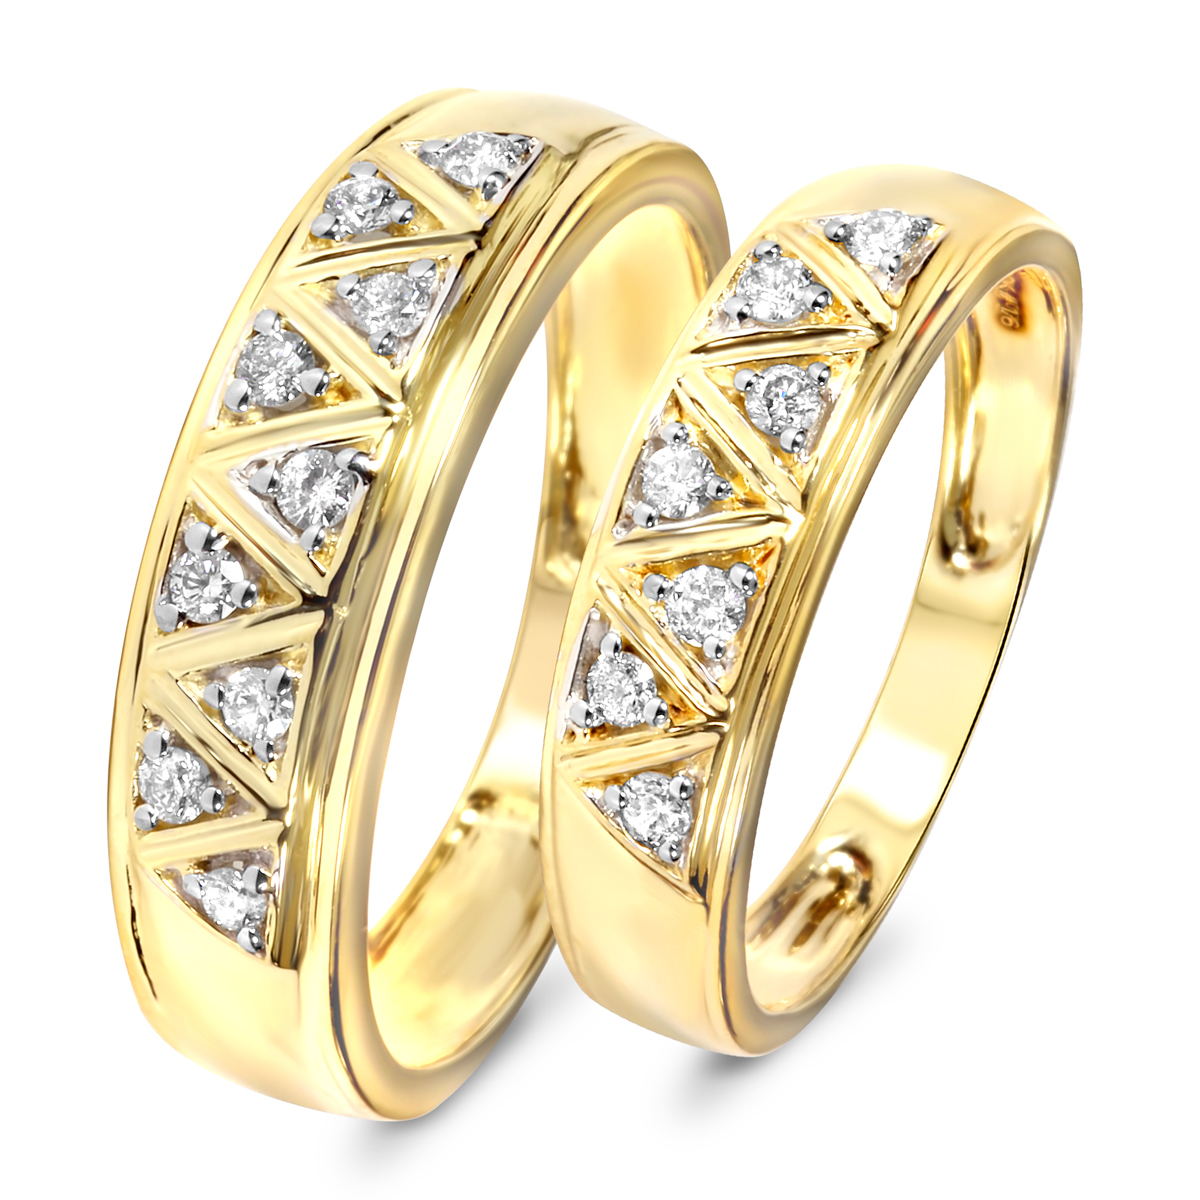 13 carat tw diamond his and hers wedding band set 14k yellow gold junglespirit Choice Image